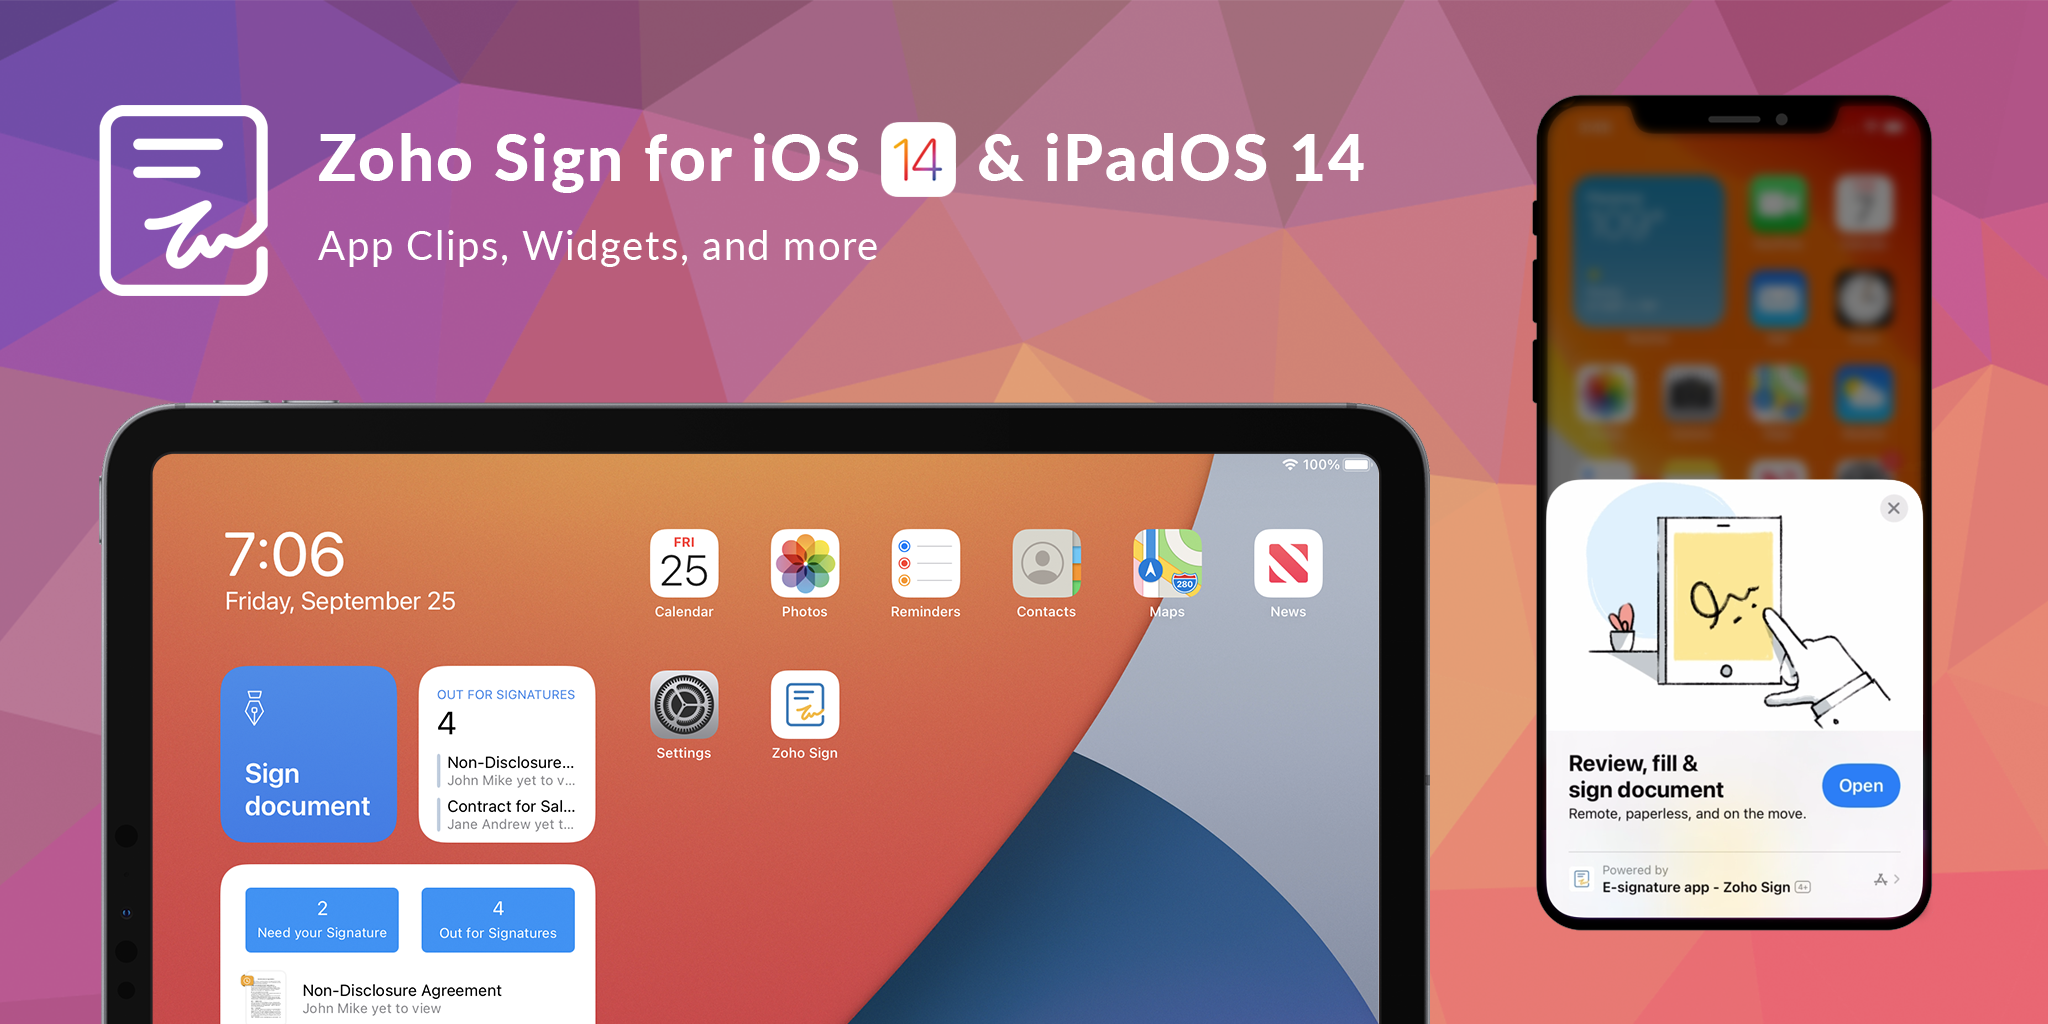 Zoho Sign for iOS 14 and iPadOS 14: App Clips, Widgets, and Scribble on the go